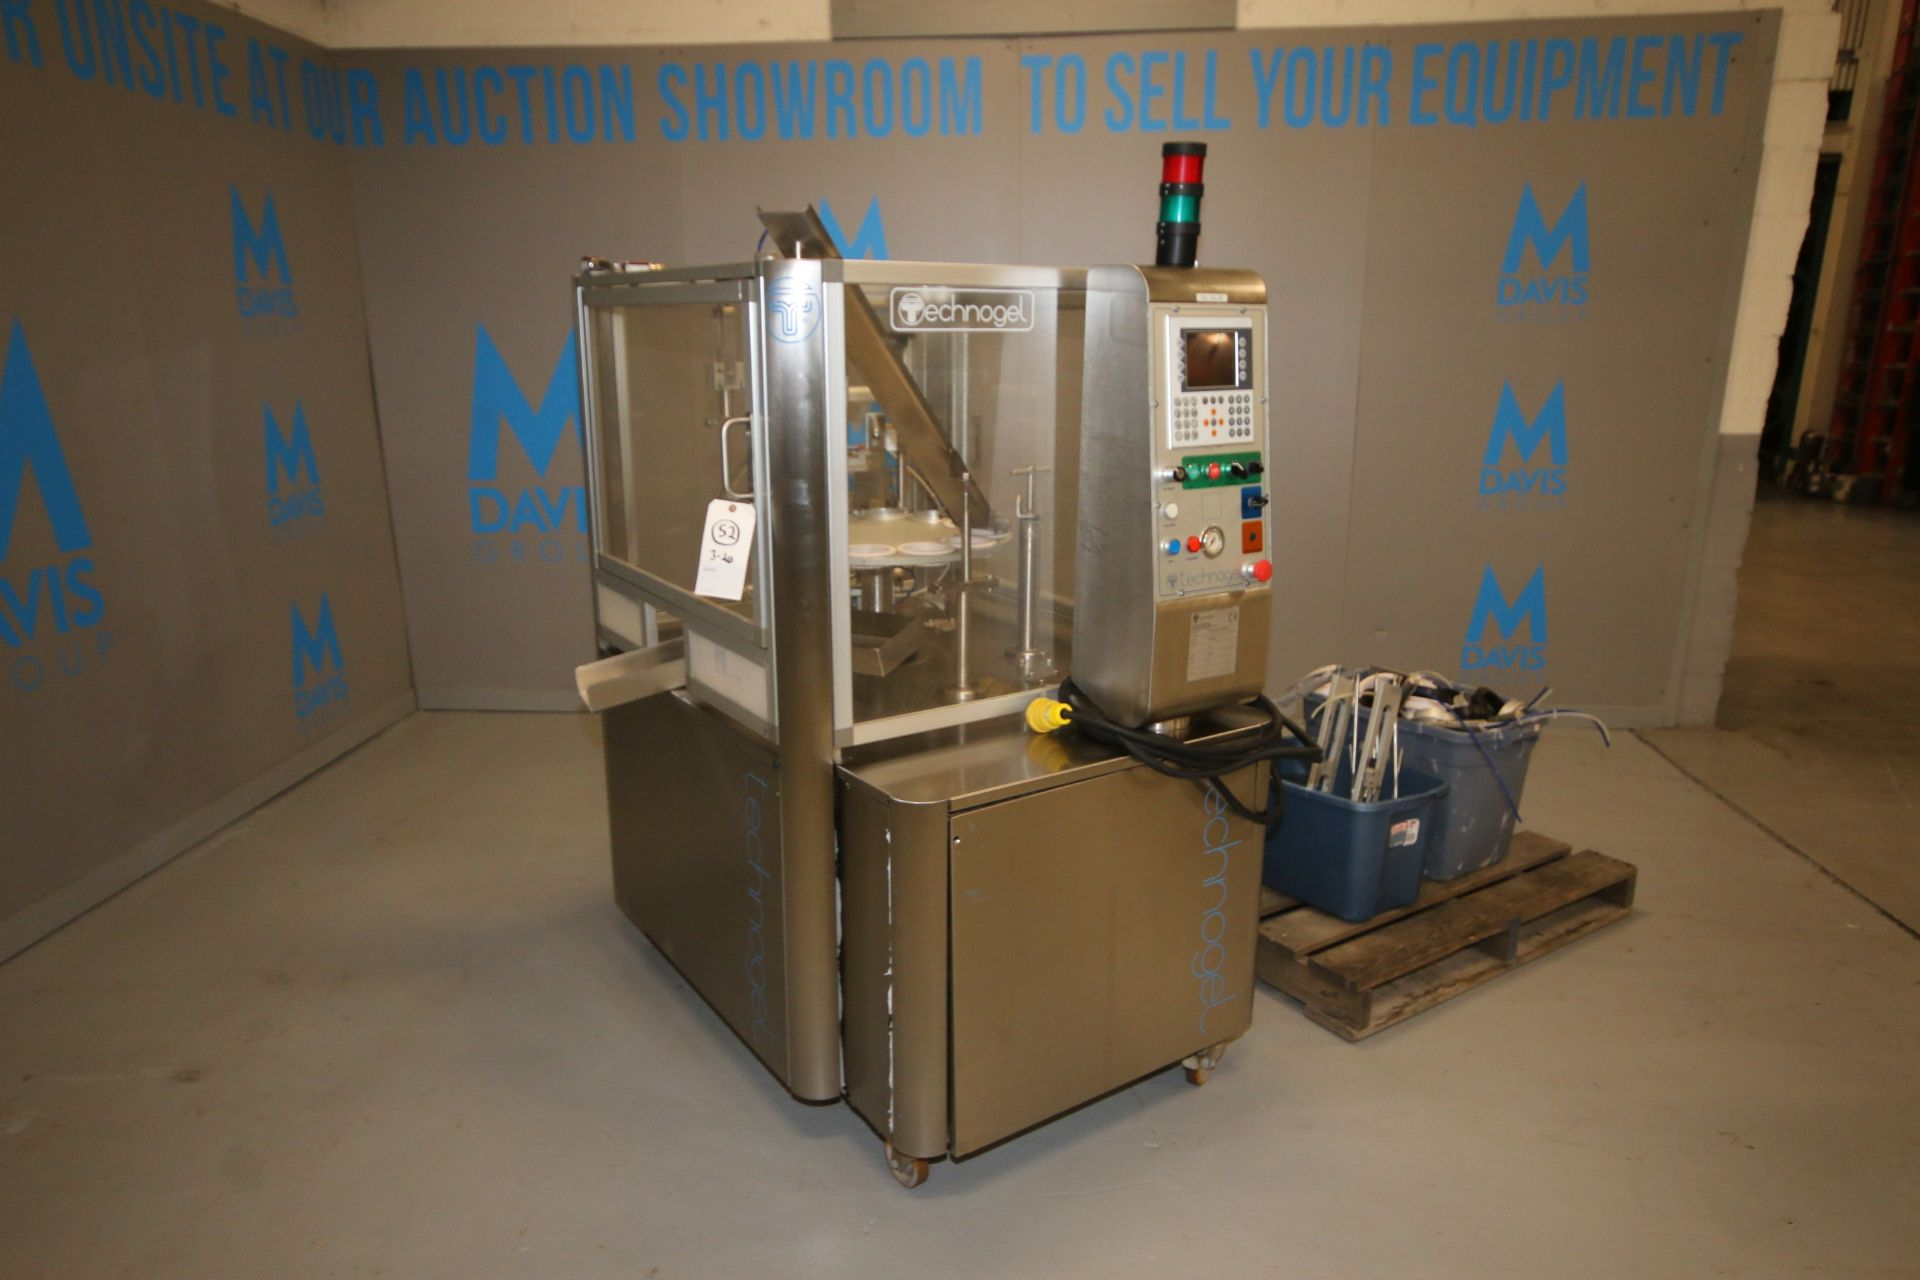 Lot 30 - 2010 Technogel 12-Station S/S Rotary Cup Filler, Machine Type: ROTARY 4000 ELETTRONICA, S/N R1058N/